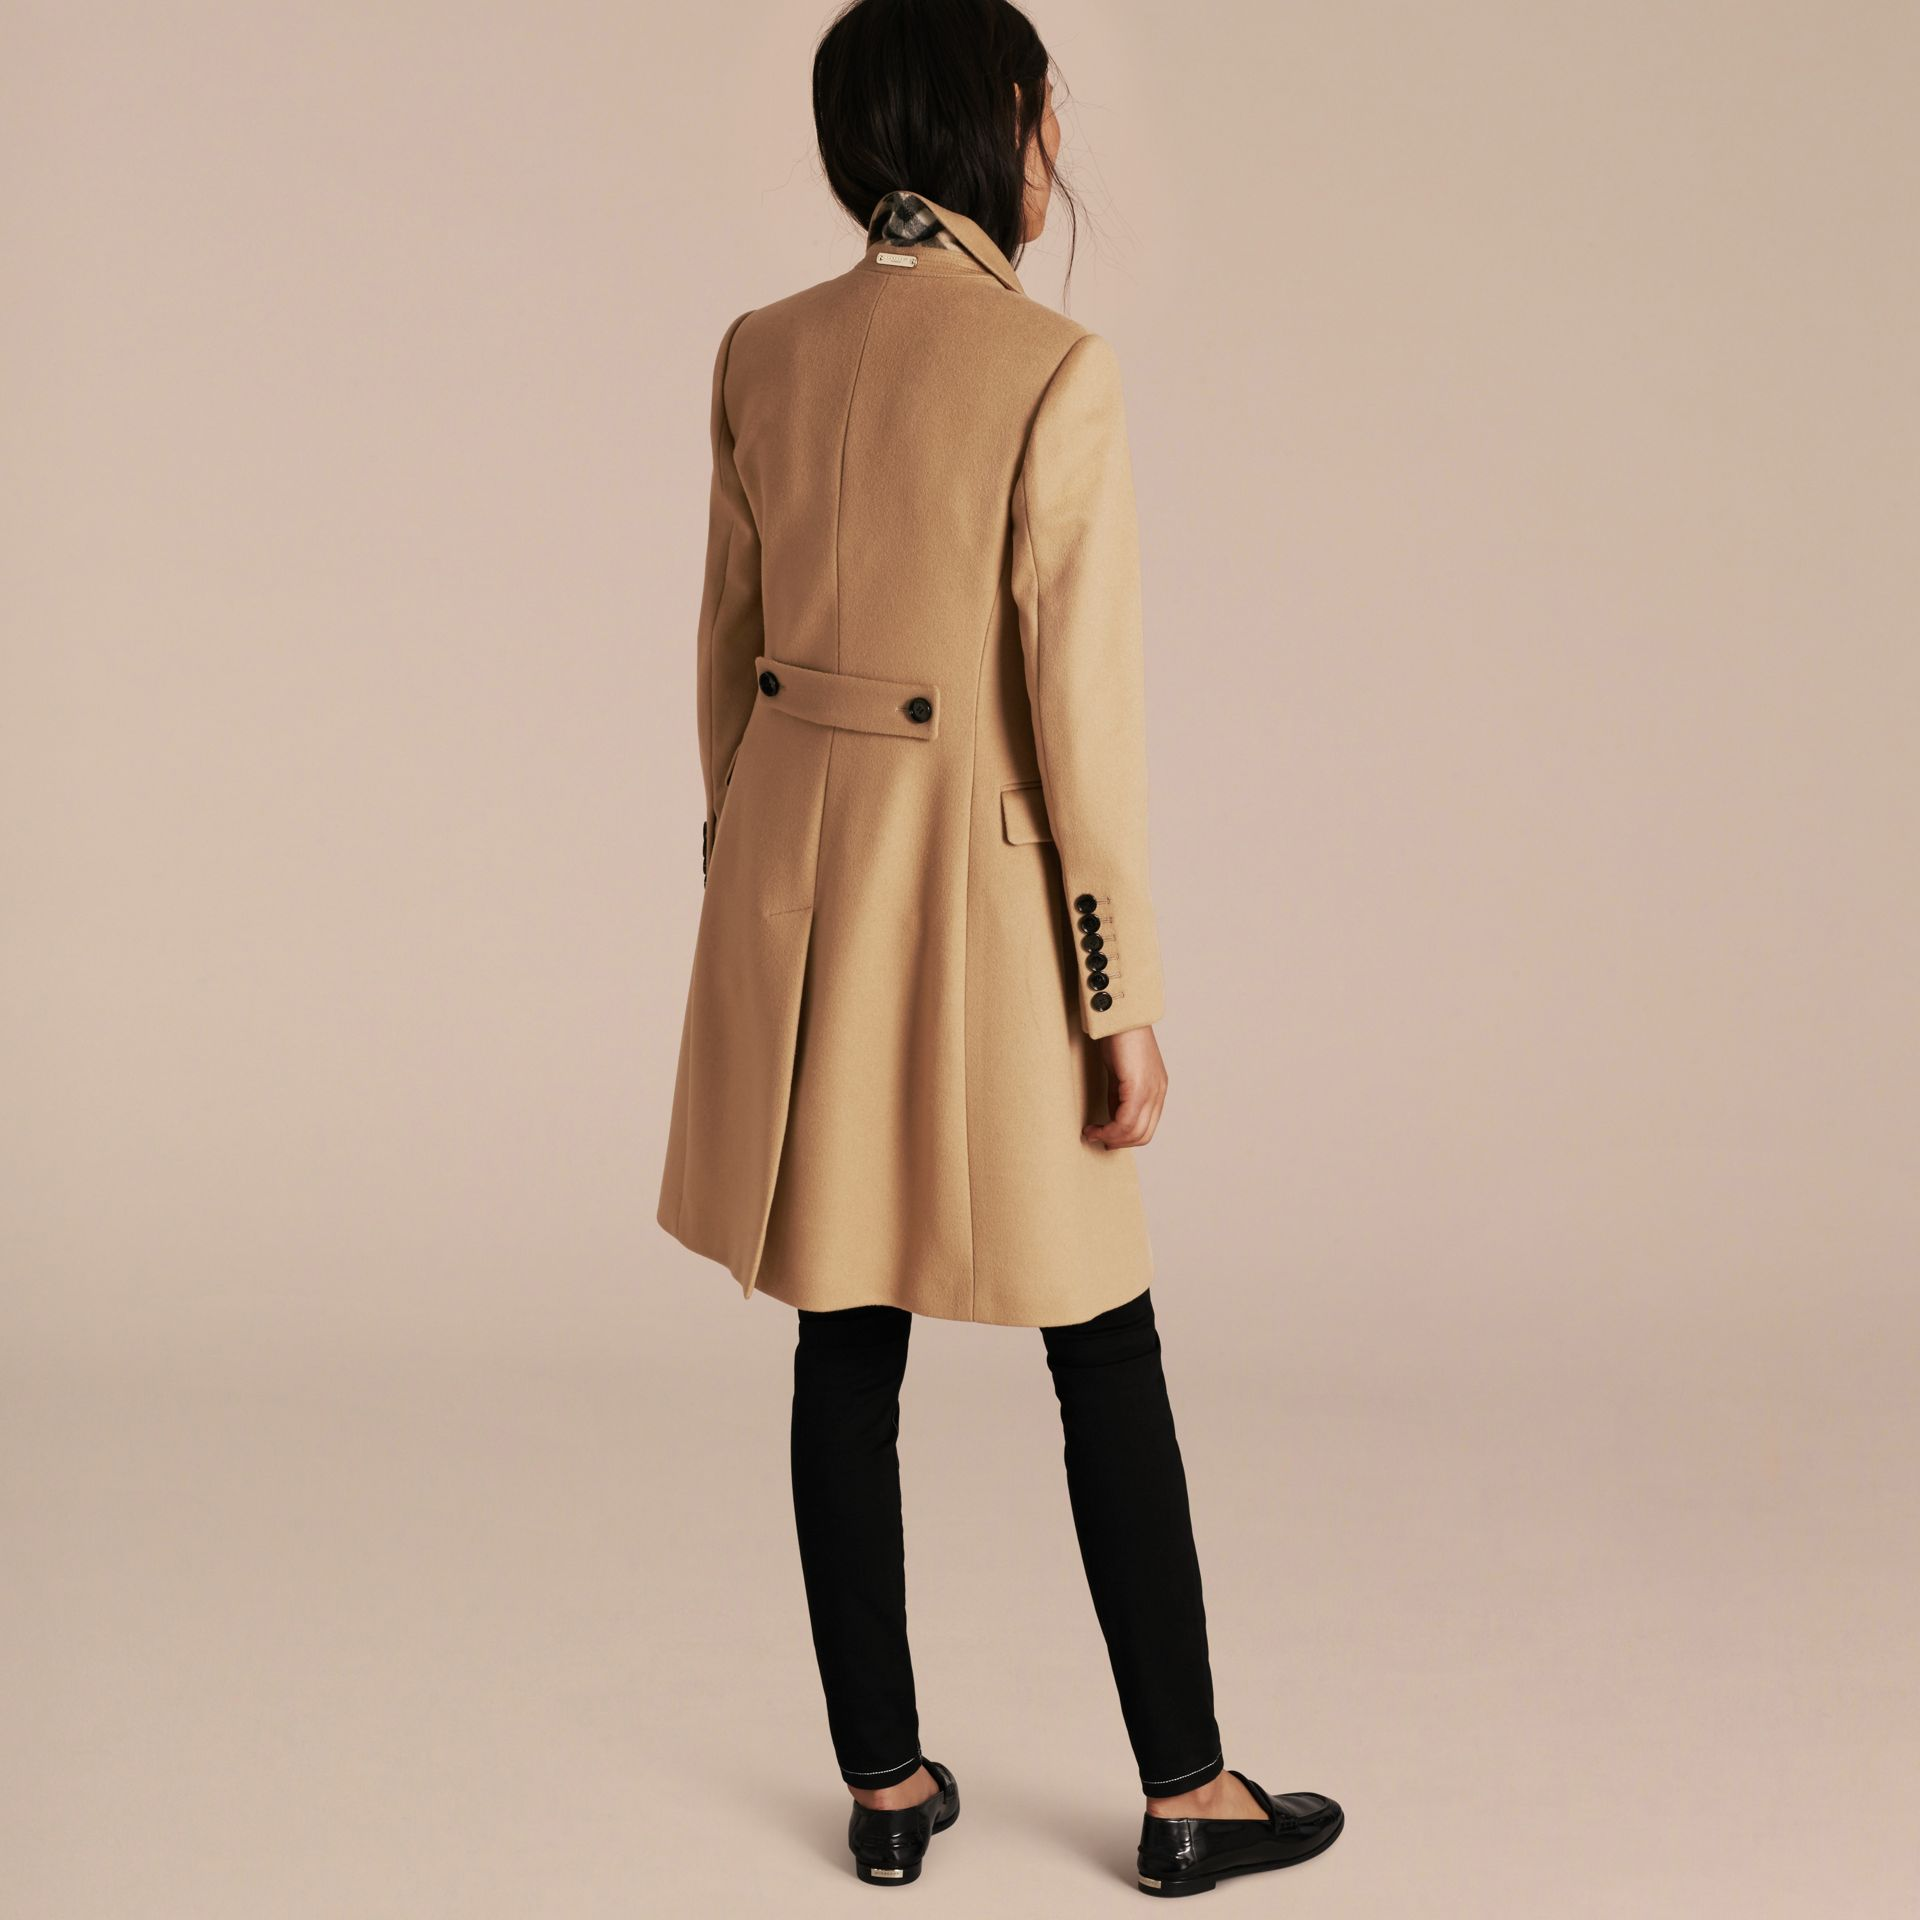 Camel Tailored Wool Cashmere Coat Camel - gallery image 3